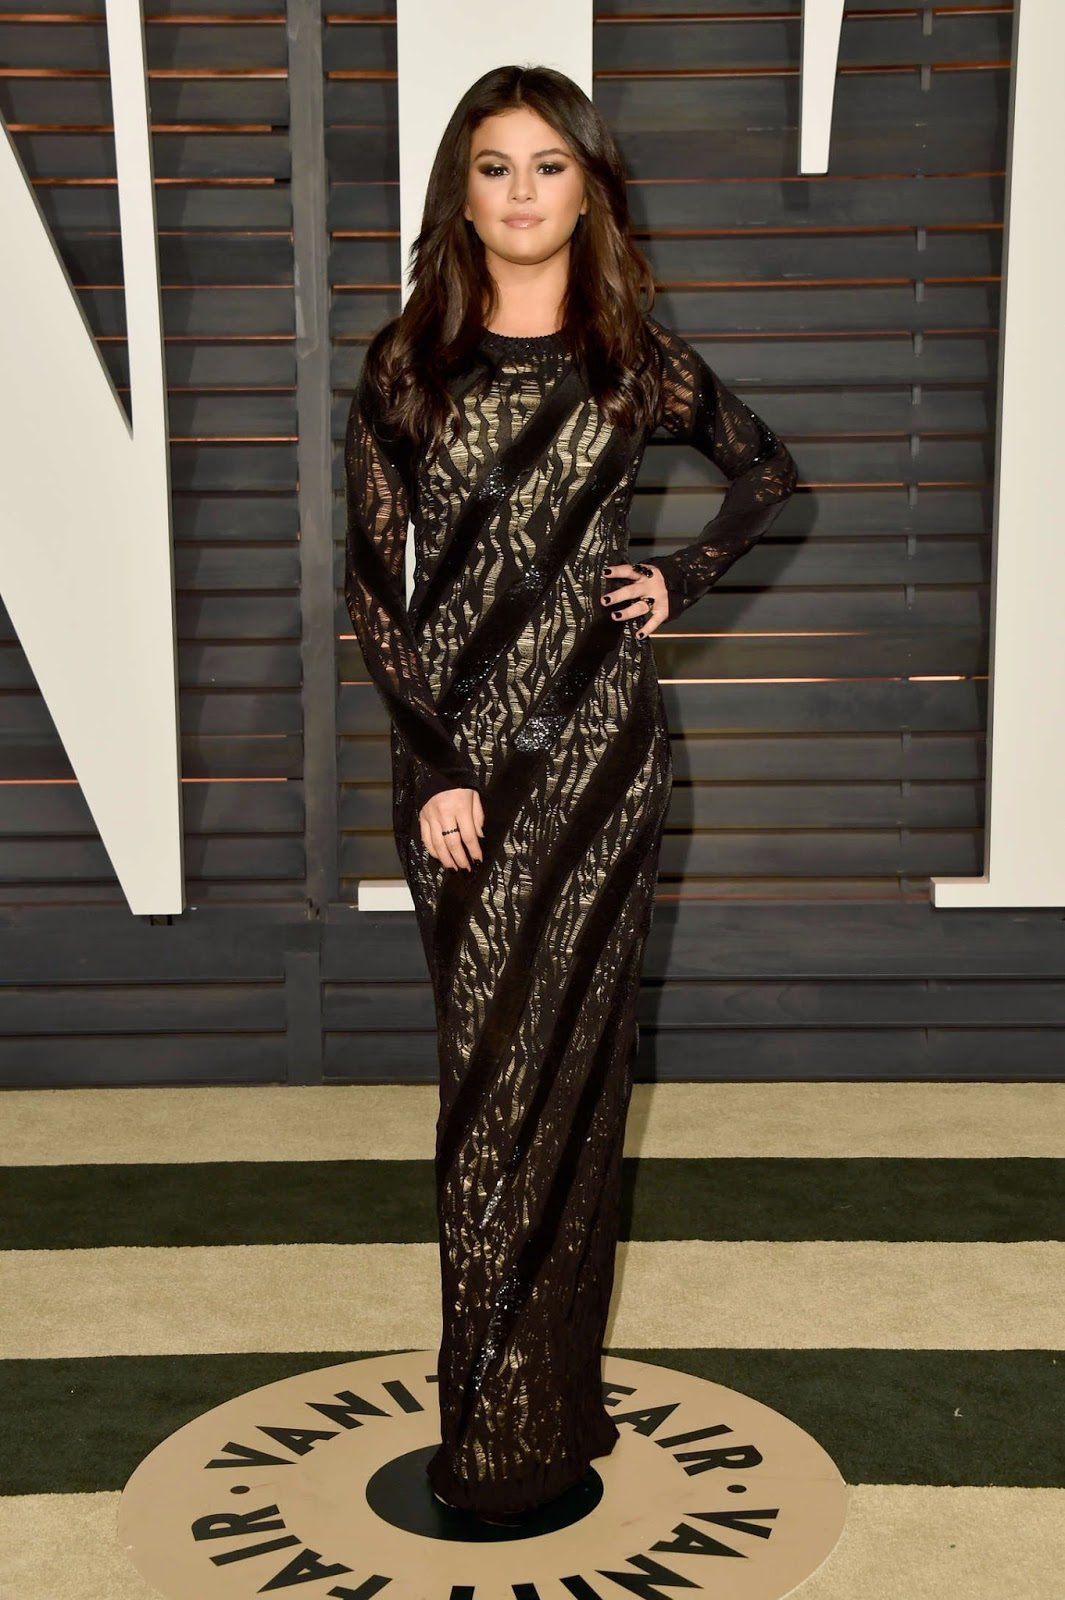 Selena Gomez flaunts curves in a black gown at the 2015 Vanity Fair Oscars Party in Hollywood